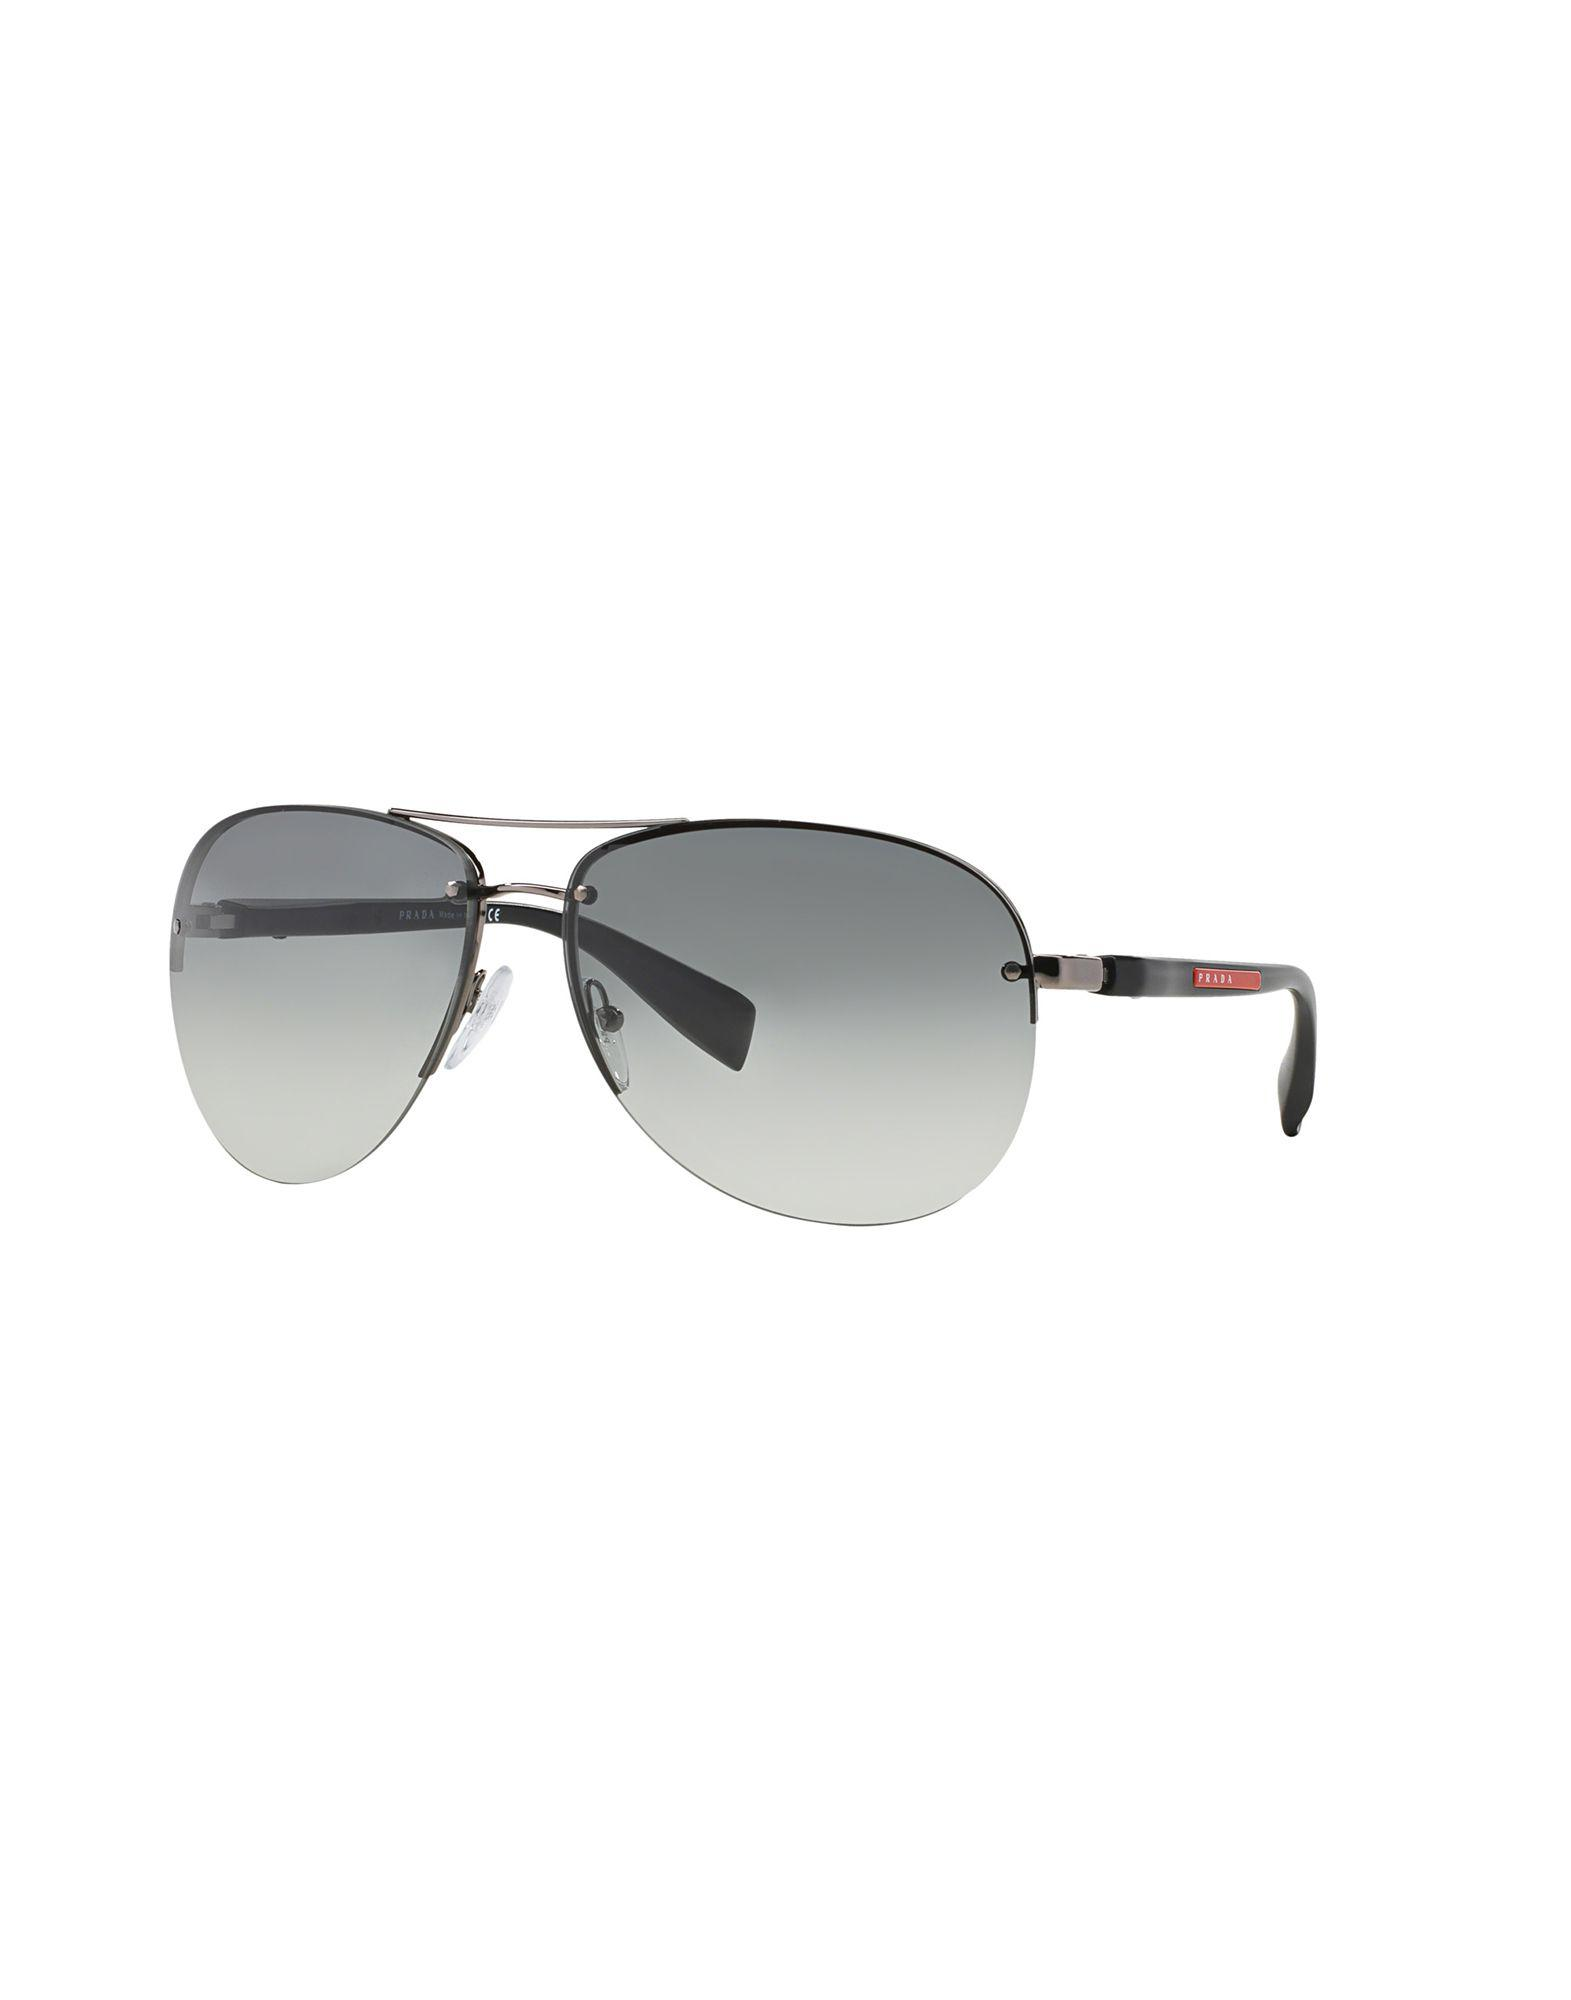 b8d8b09ce92 Prada - Gray Sunglasses for Men - Lyst. View fullscreen